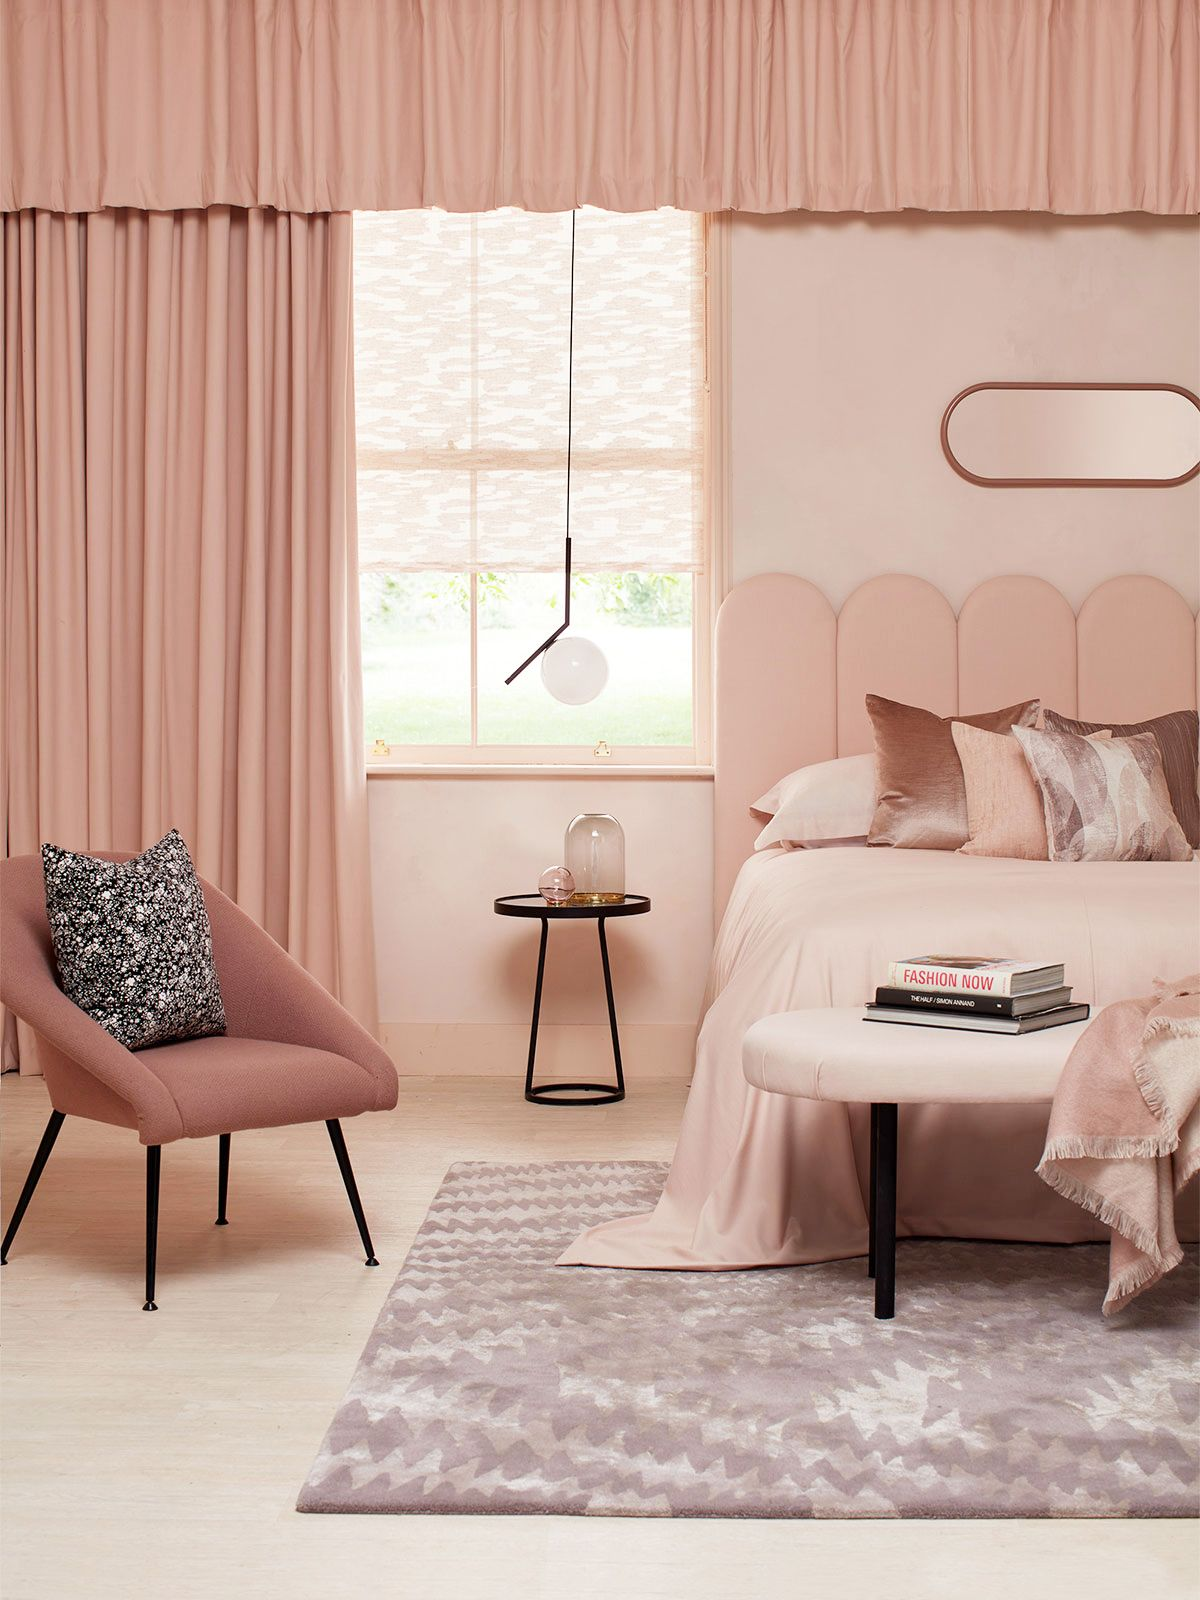 20 best bedroom colors 2019 relaxing paint color ideas for bedrooms rh housebeautiful com bedroom painting ideas images bedroom painting ideas with two colors